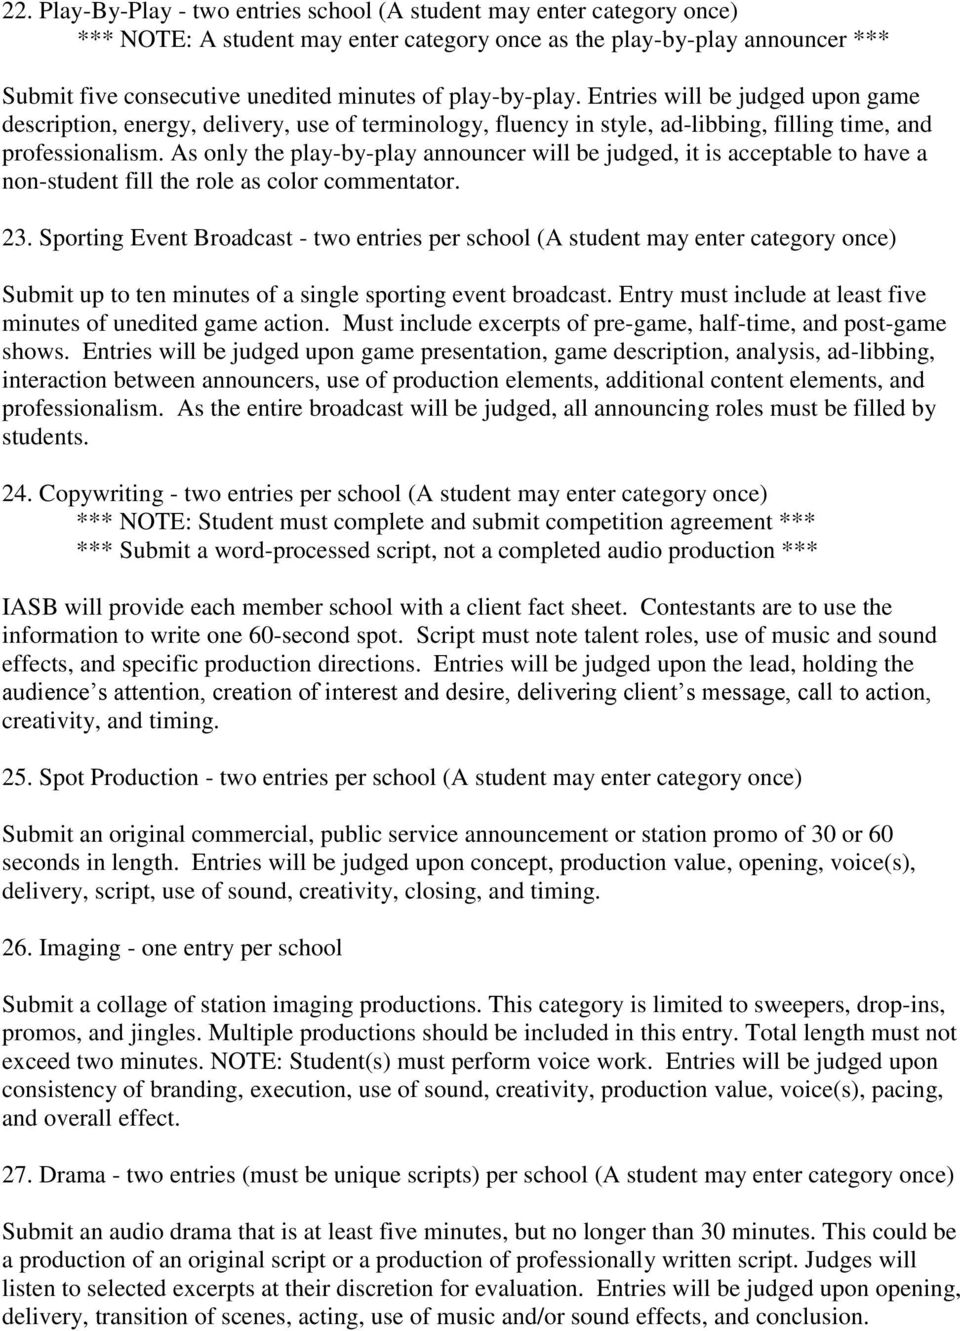 2016 High School Competition Criteria and Rules - PDF